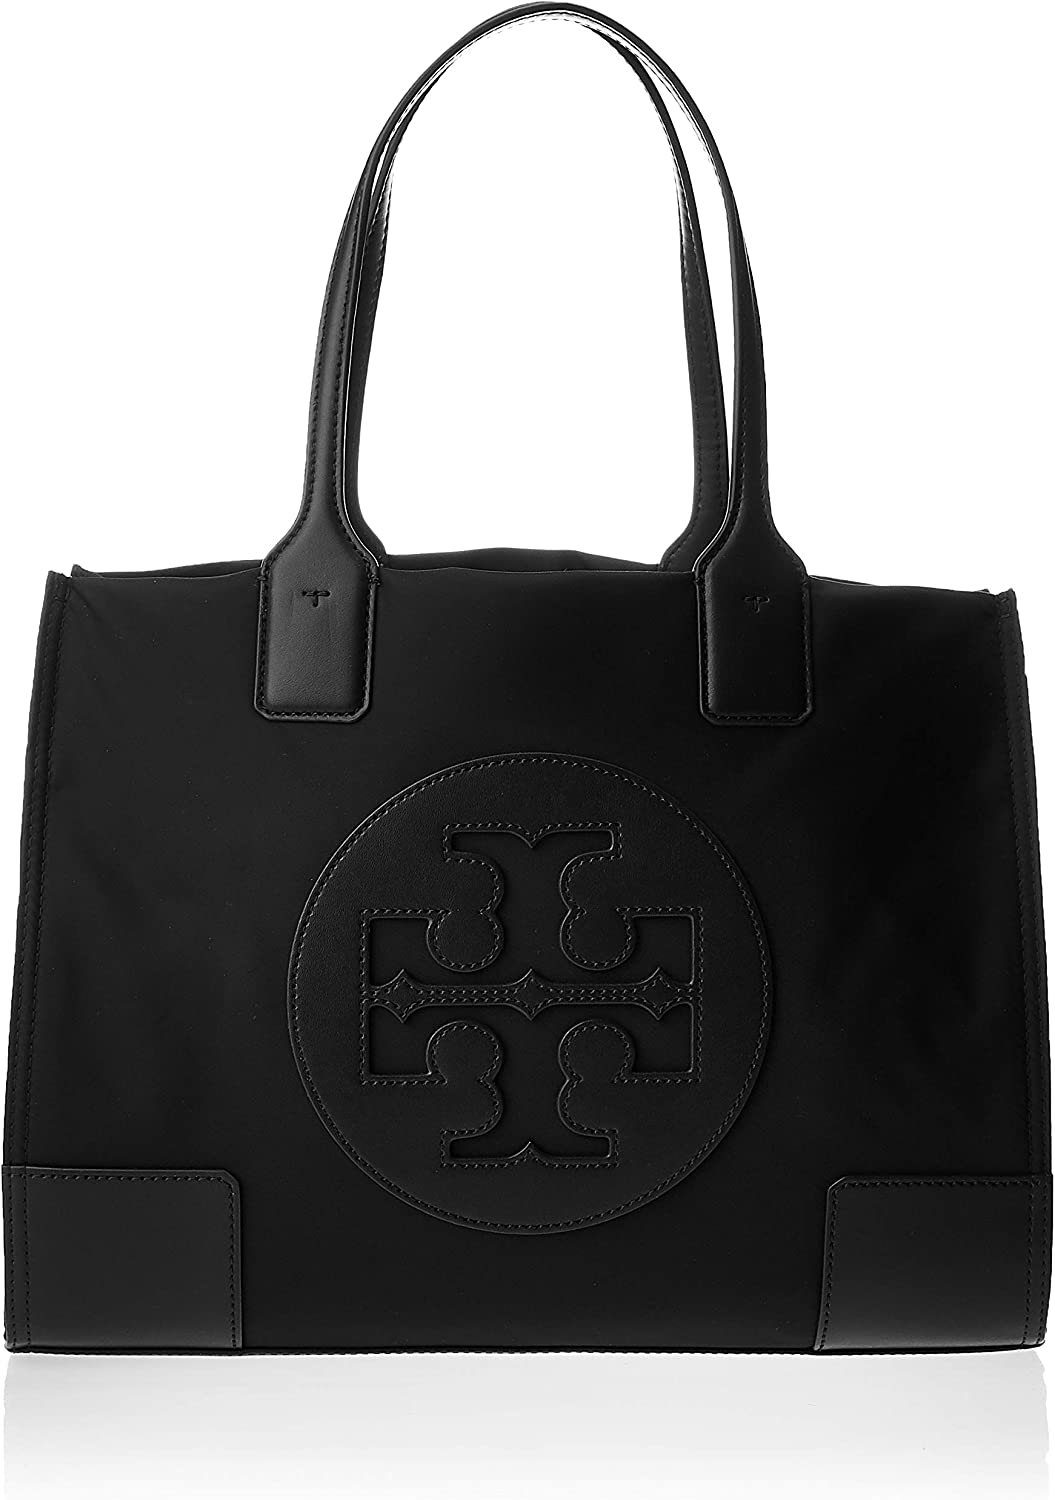 Tory Burch Ella Mini Tote 71oerT2BS8VL